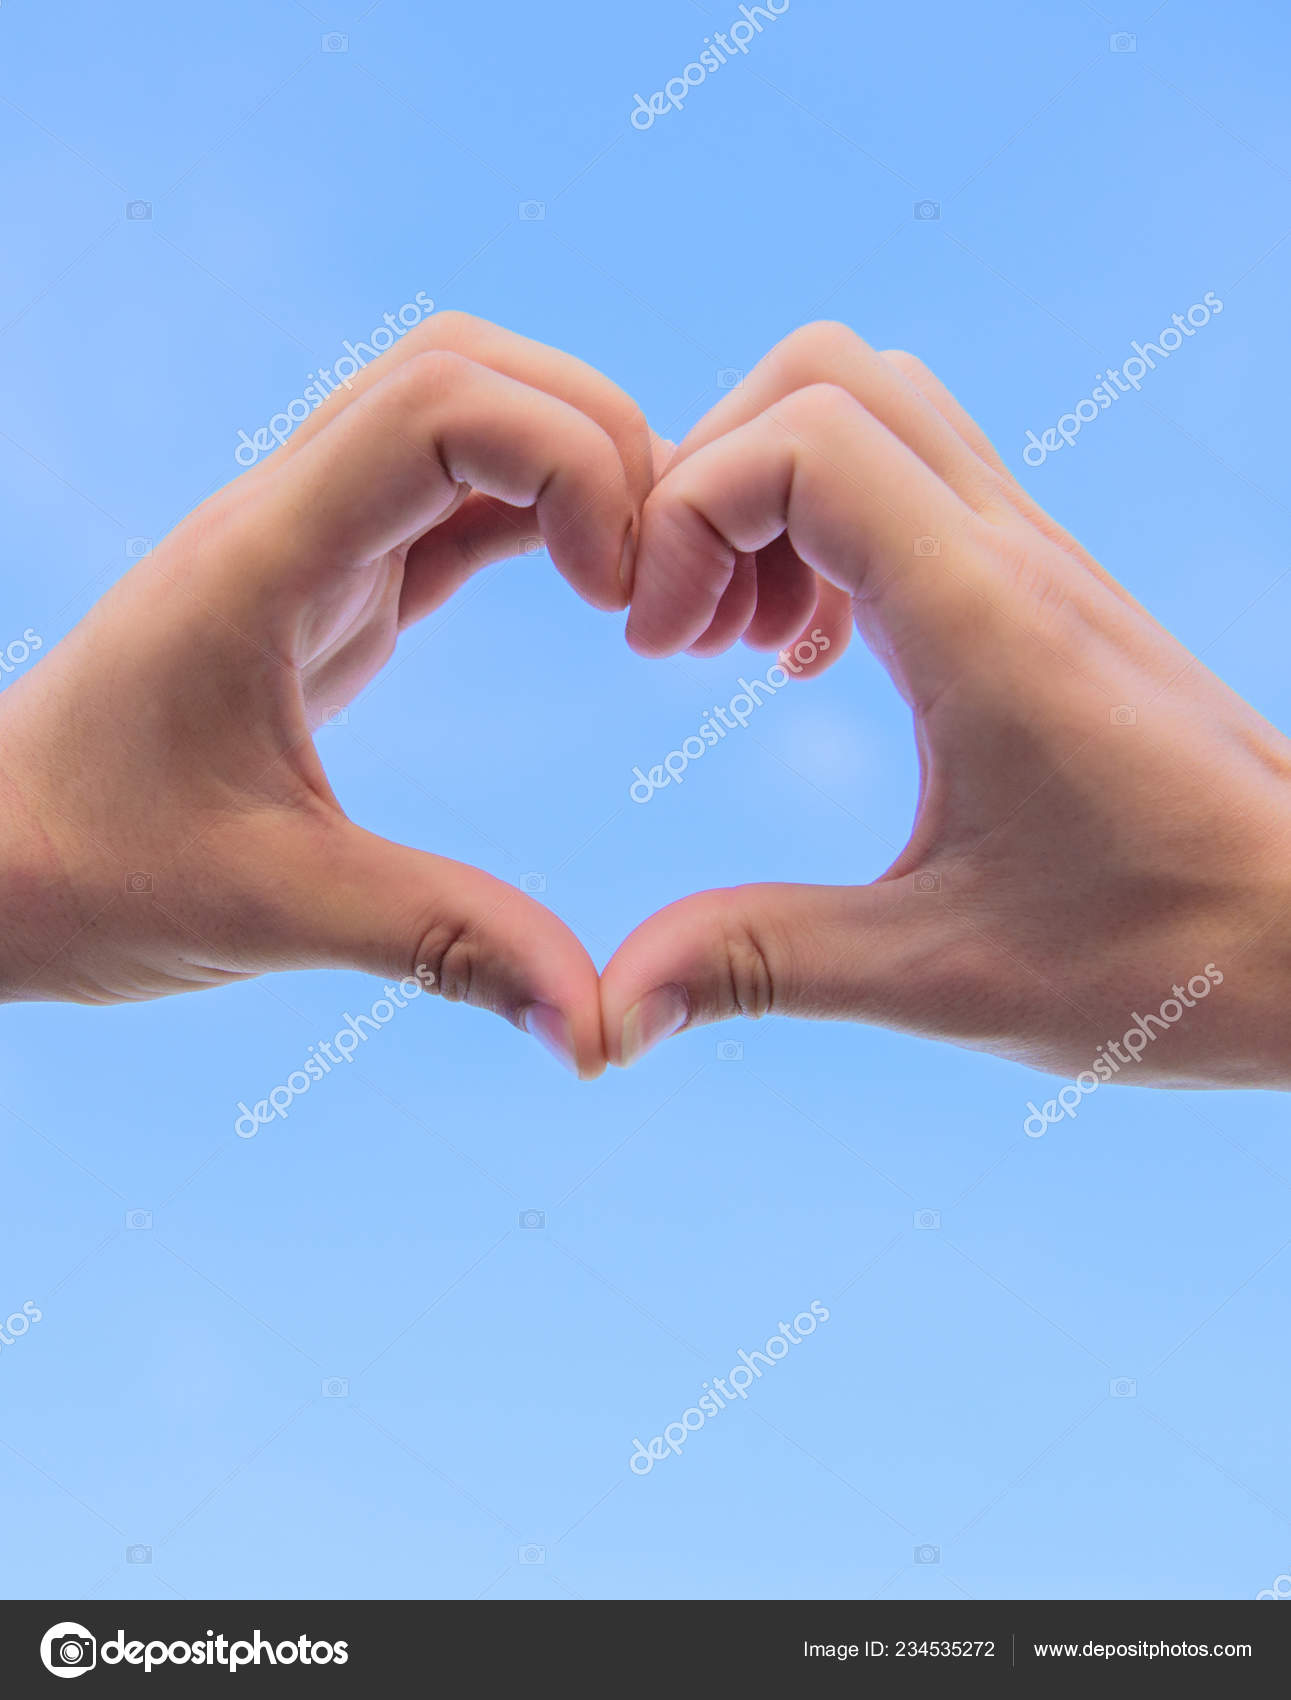 Put Picture In Heart Shape : picture, heart, shape, Hands, Together, Heart, Shape, Background., Symbol, Concept., Gesture, Forms, Using, Fingers., Romance, Stock